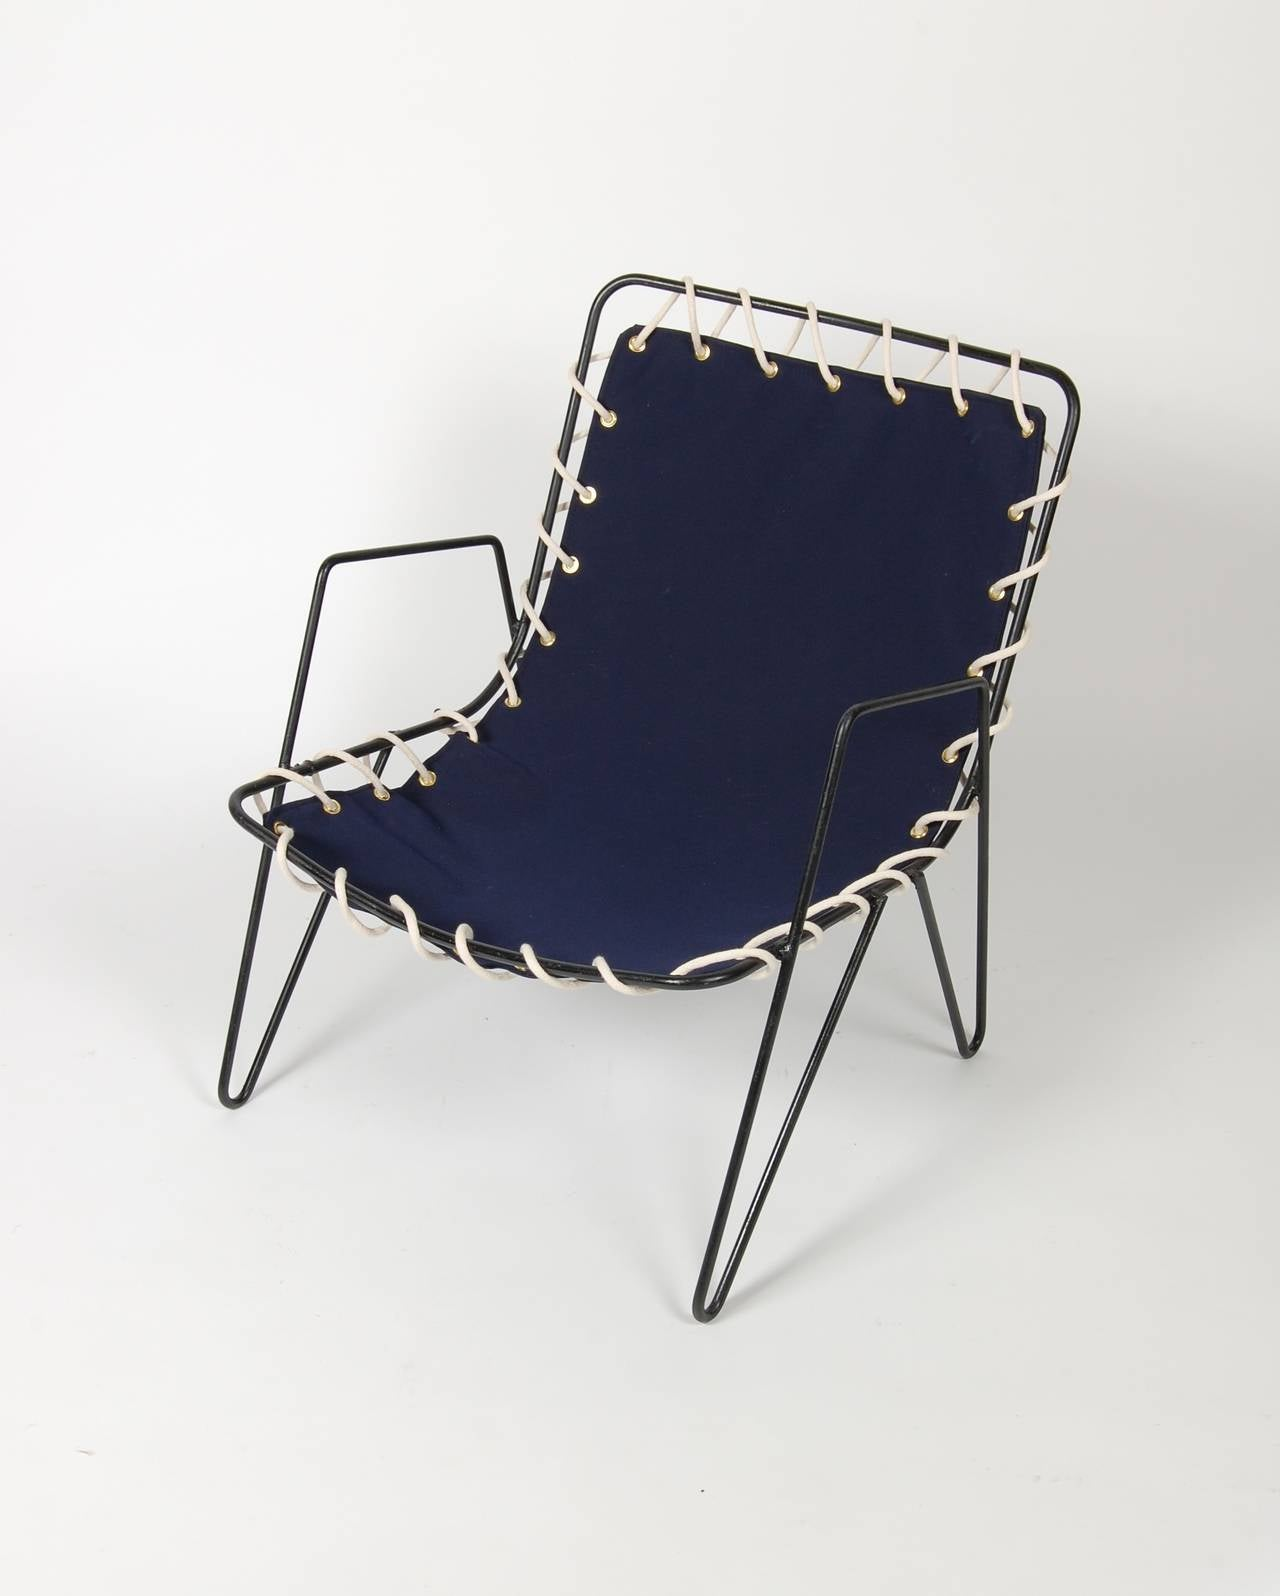 Modernist Iron and Blue Canvas Patio Lounge Chair 1950s at 1stdibs